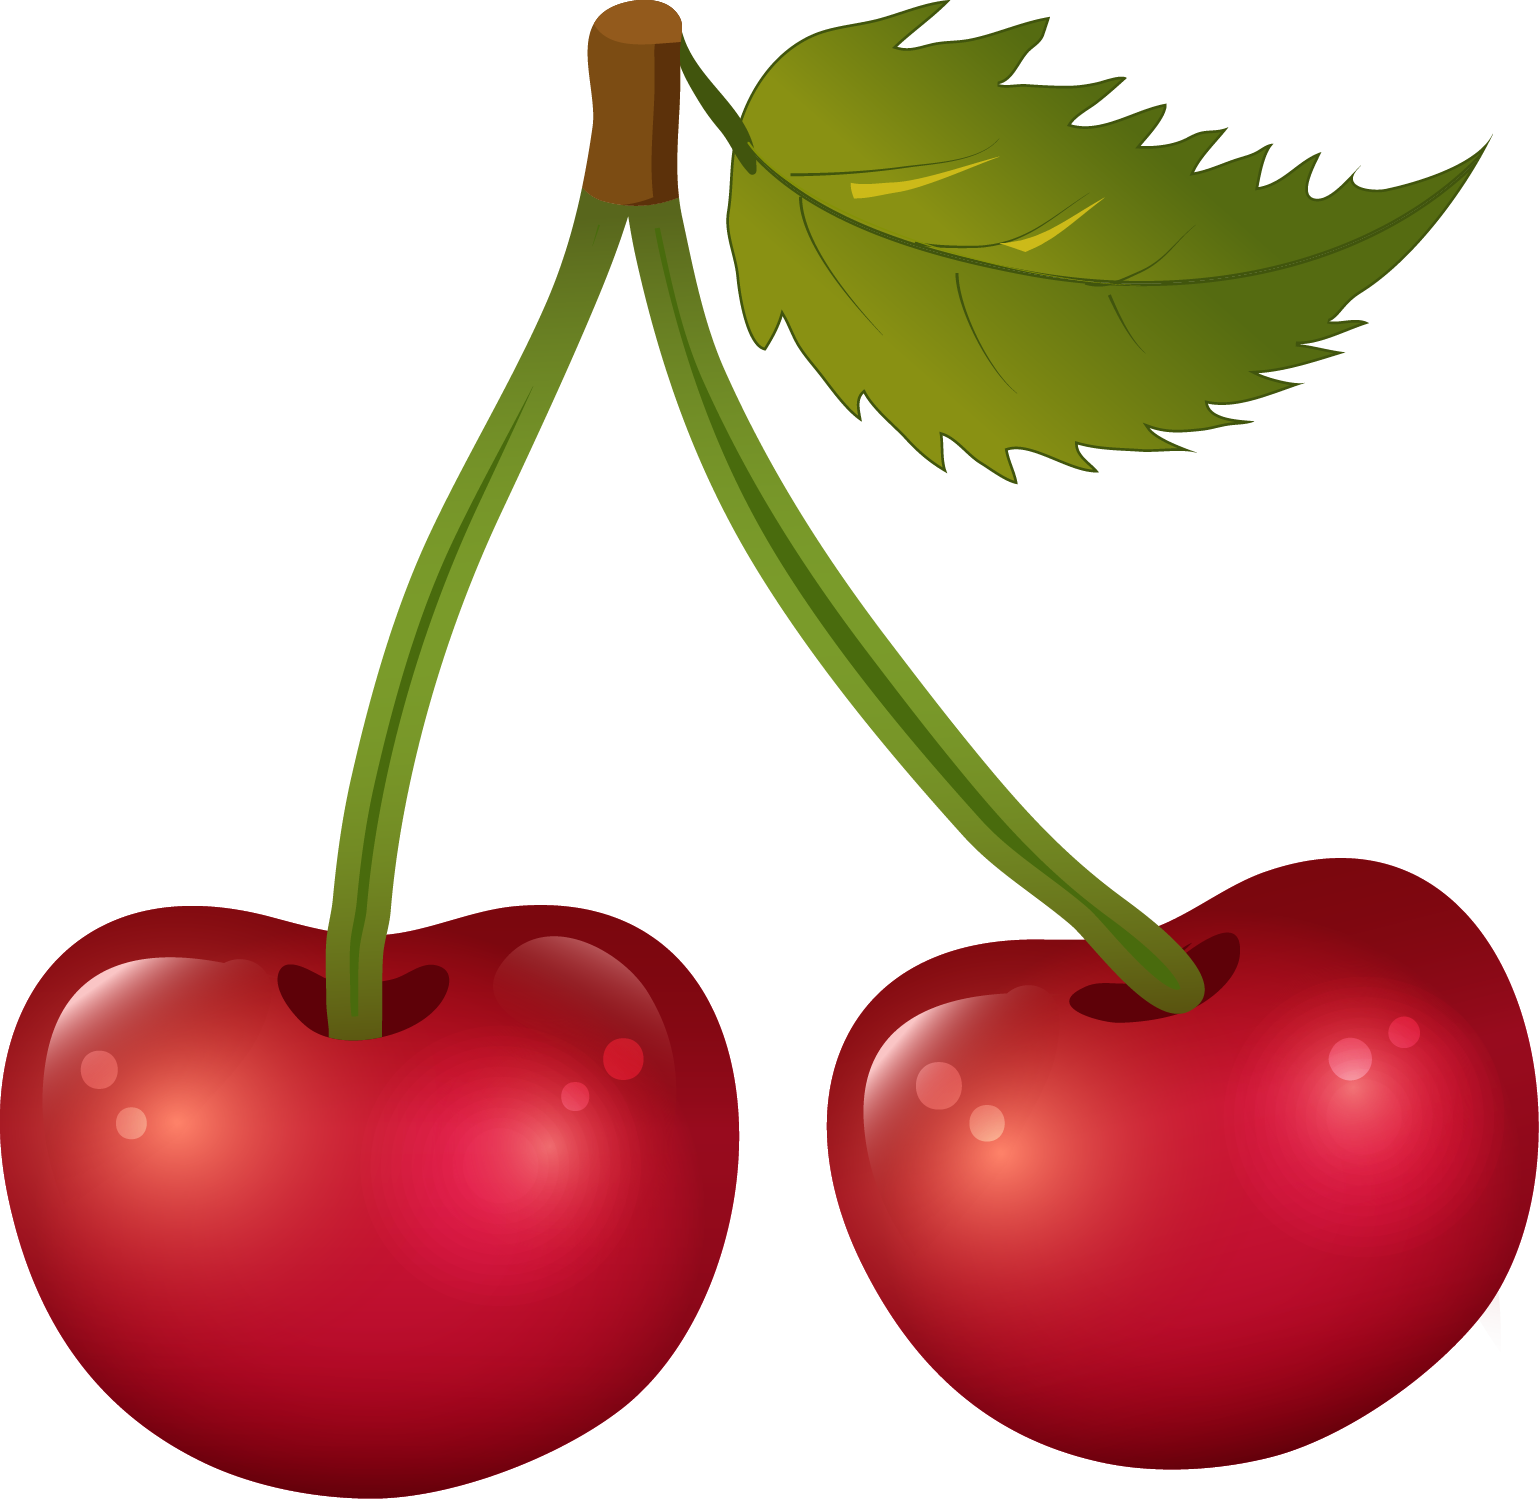 Cherry clipart png. Transparent free images only